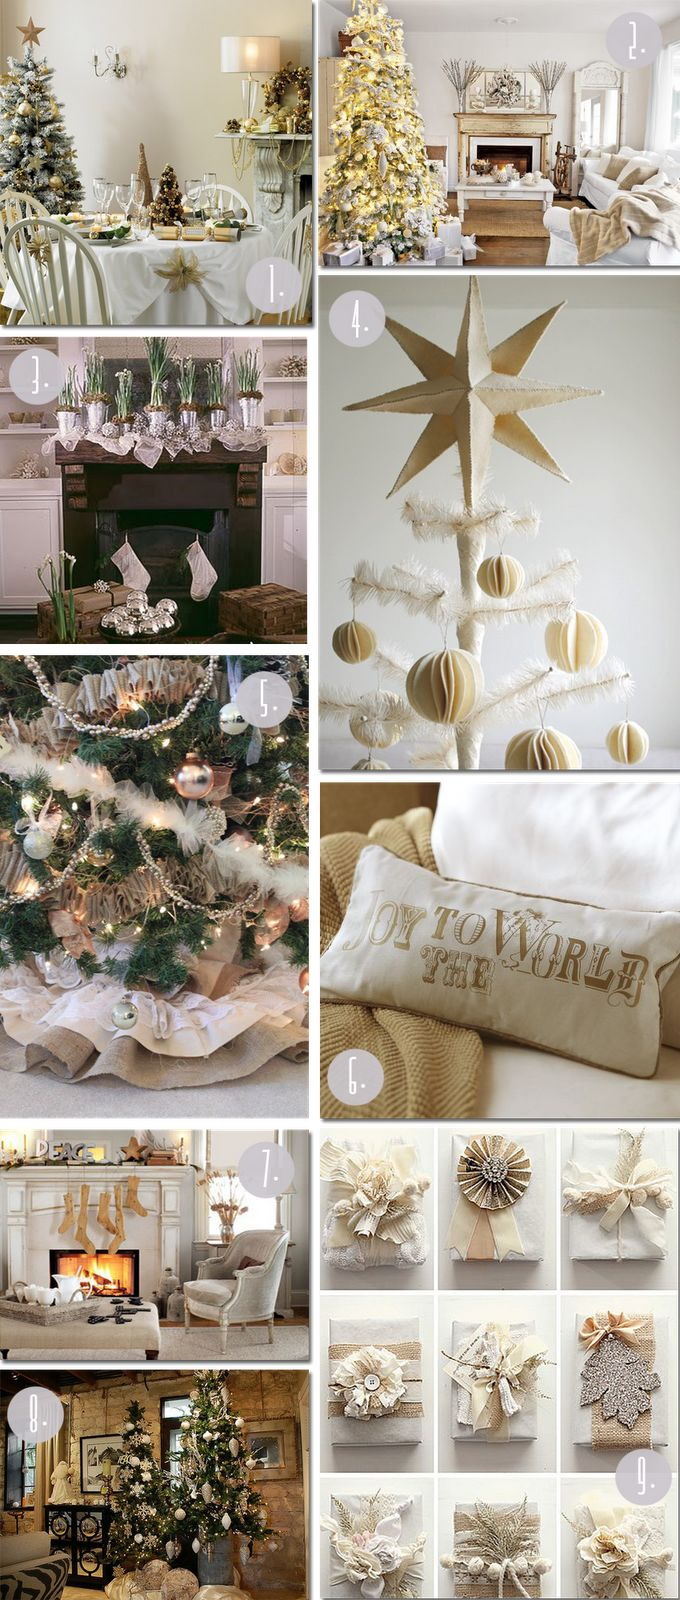 Home gt artificial florals gt holidays gt 60 quot poinsettia amp berry garland - Hello There House Weekend Pinspiration Neutral Christmas Palette